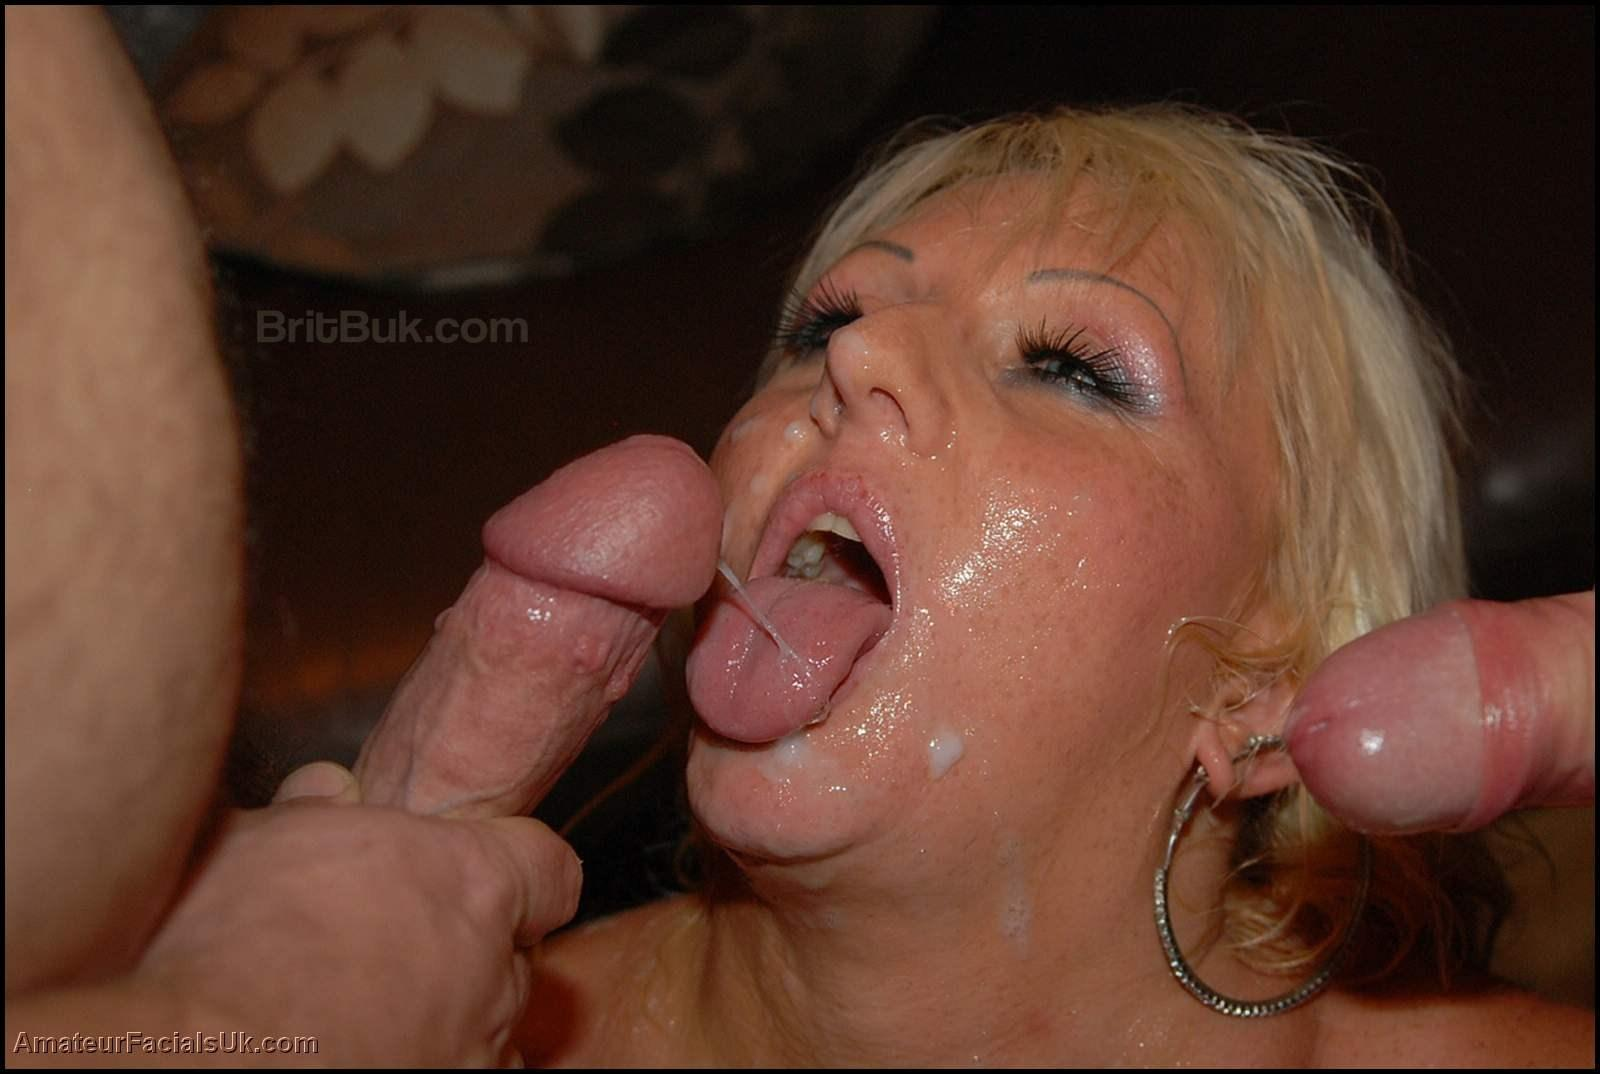 For the Mature british cum facials something is